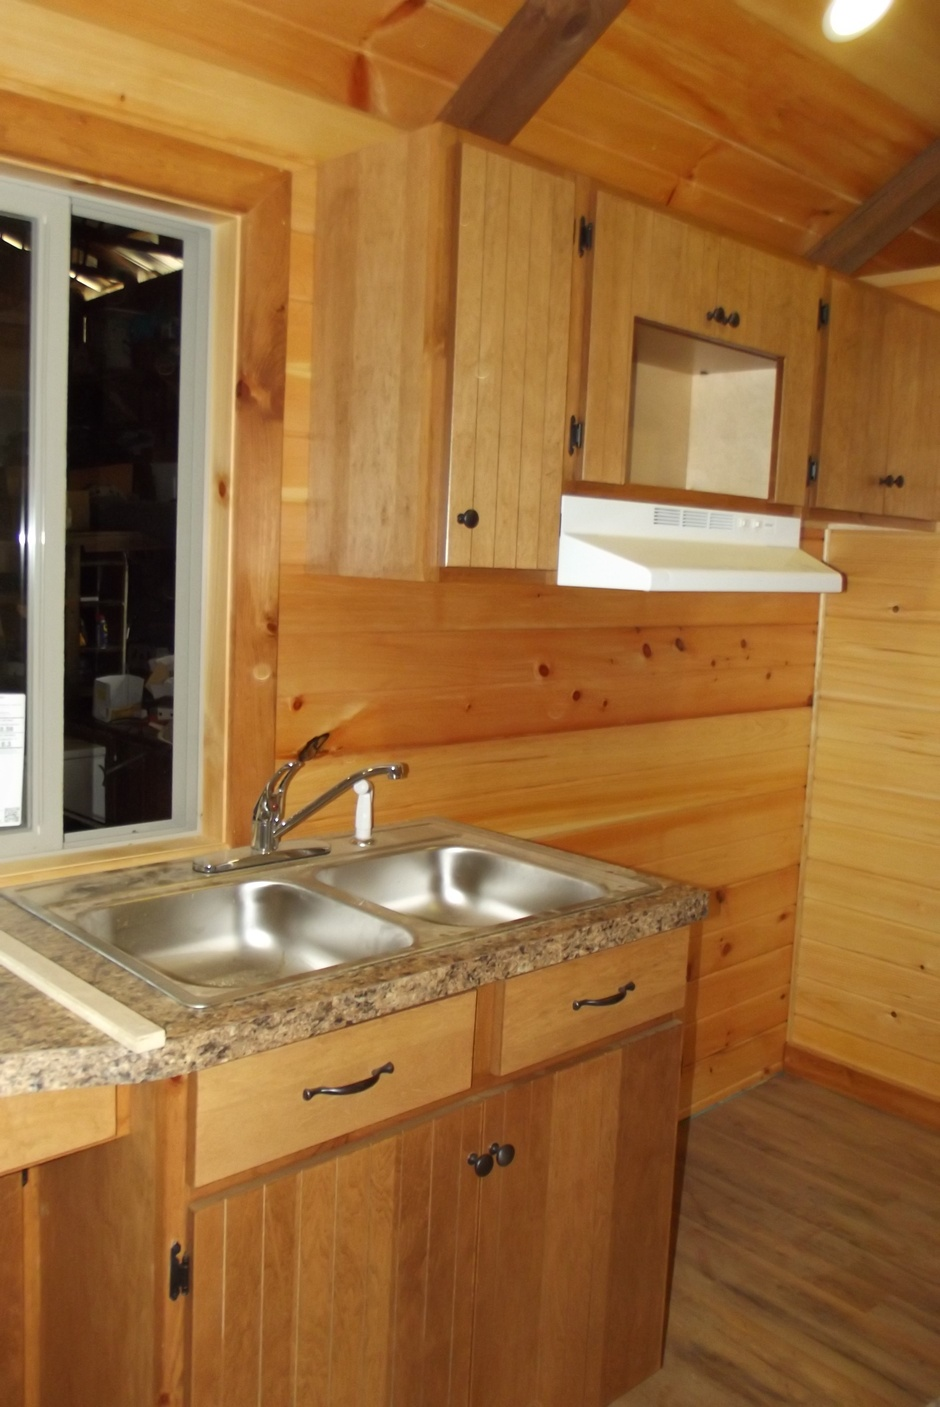 tinyhome_largermodelkitchen